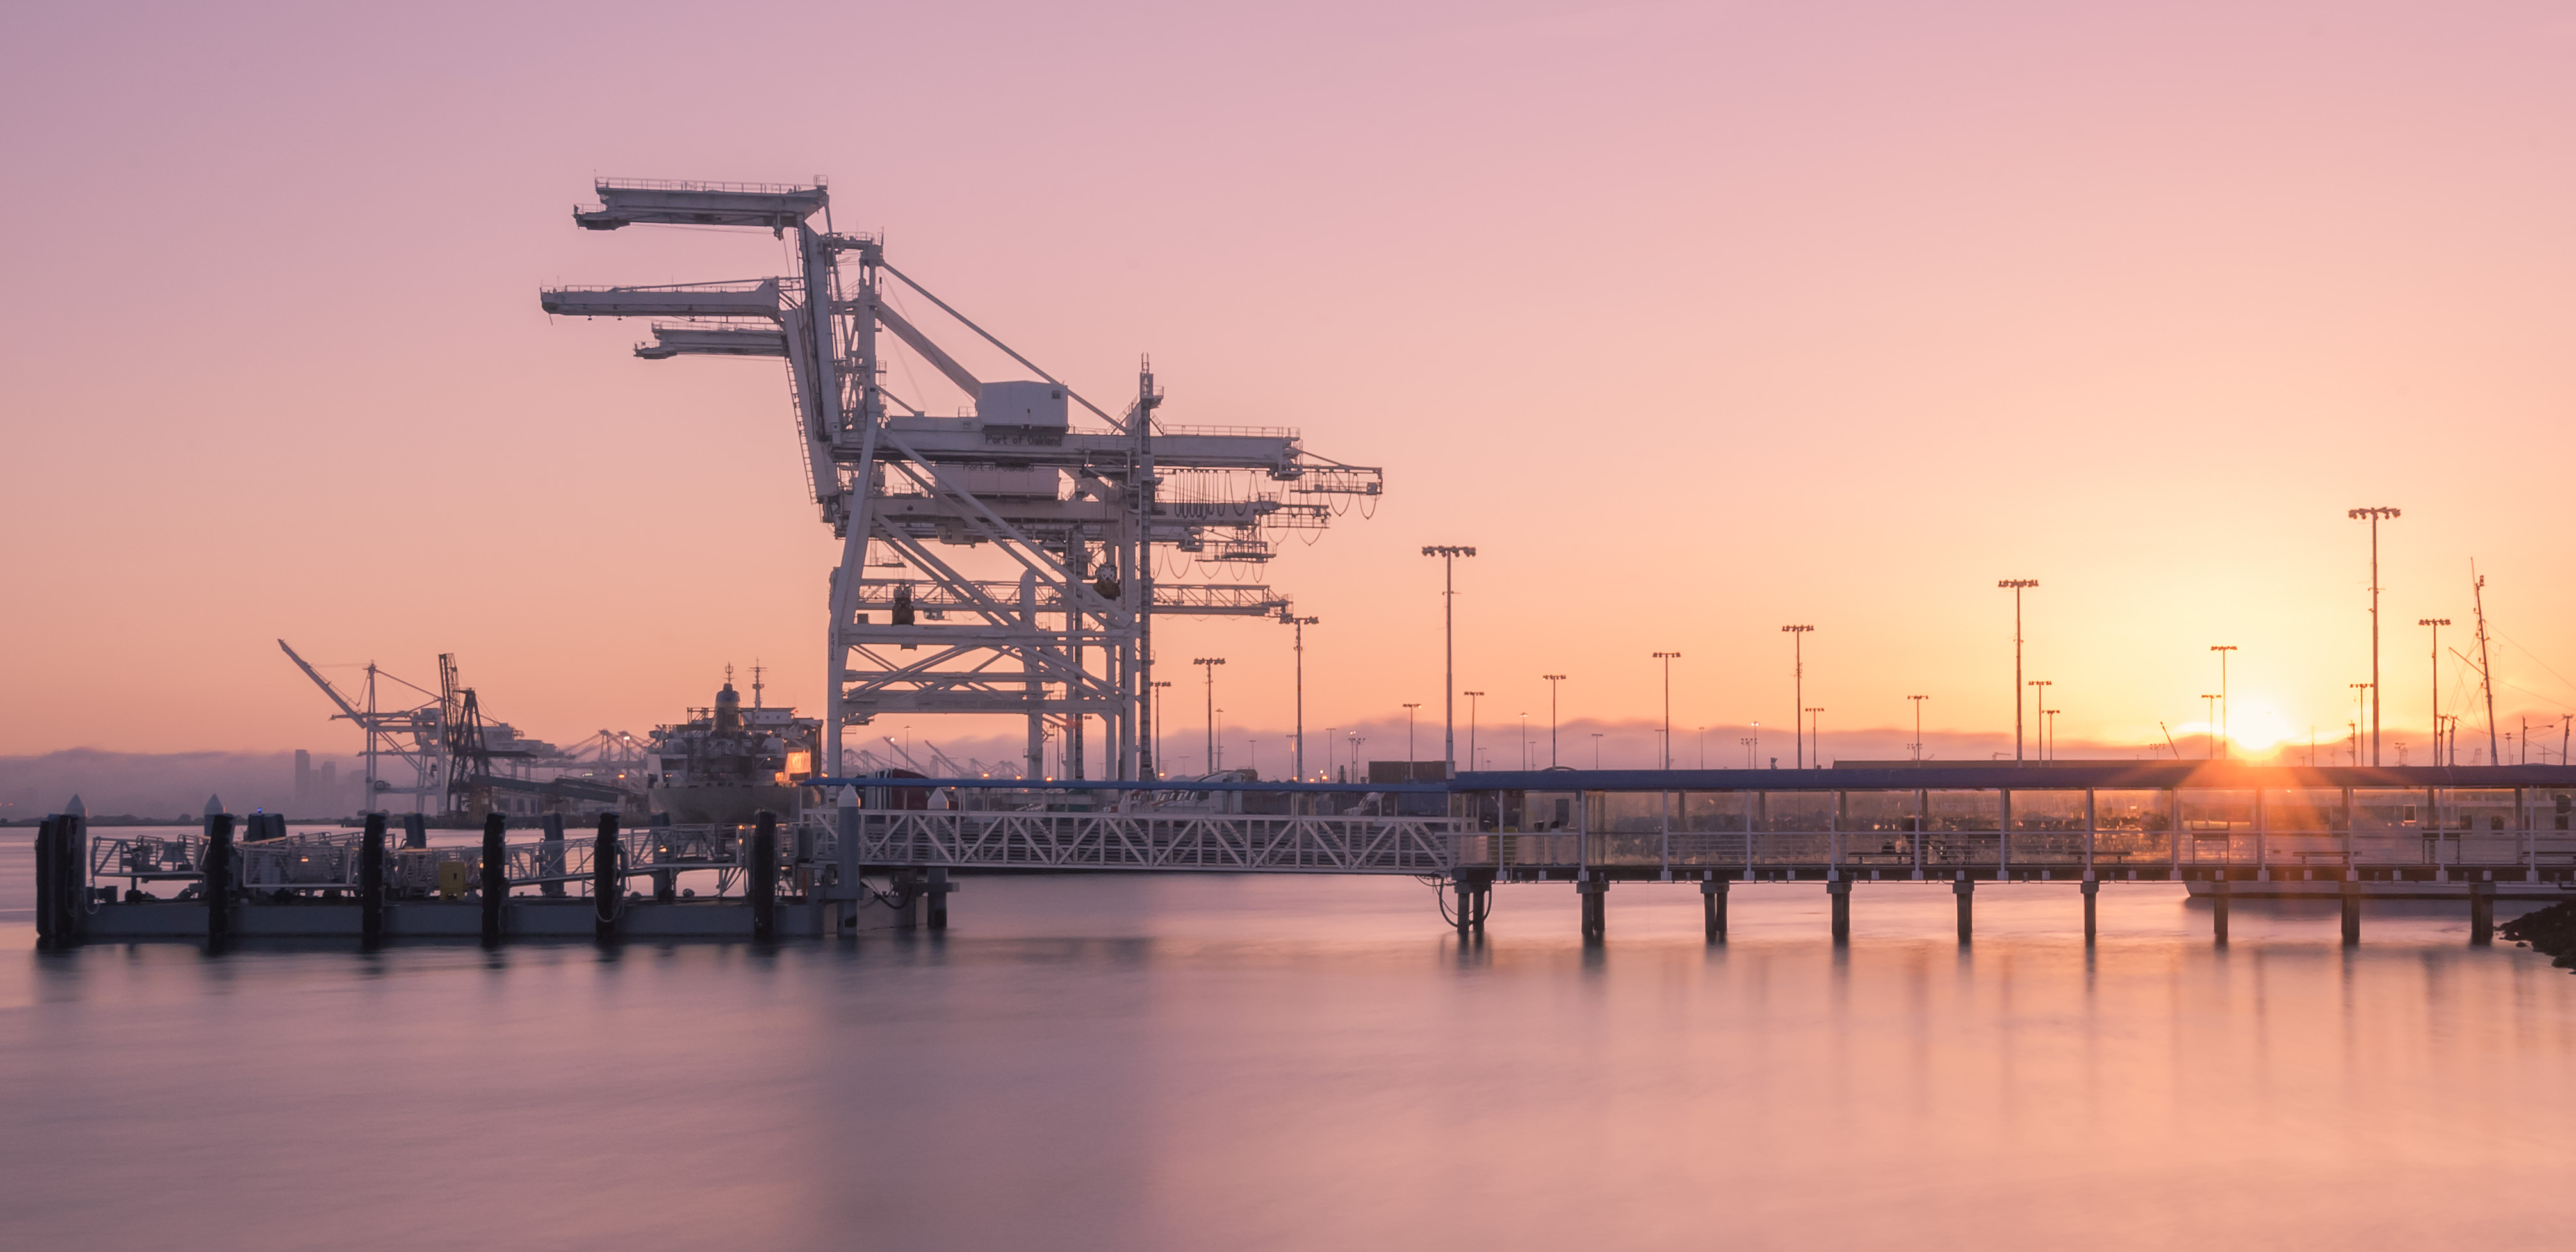 Sunset at the Port of Oakland